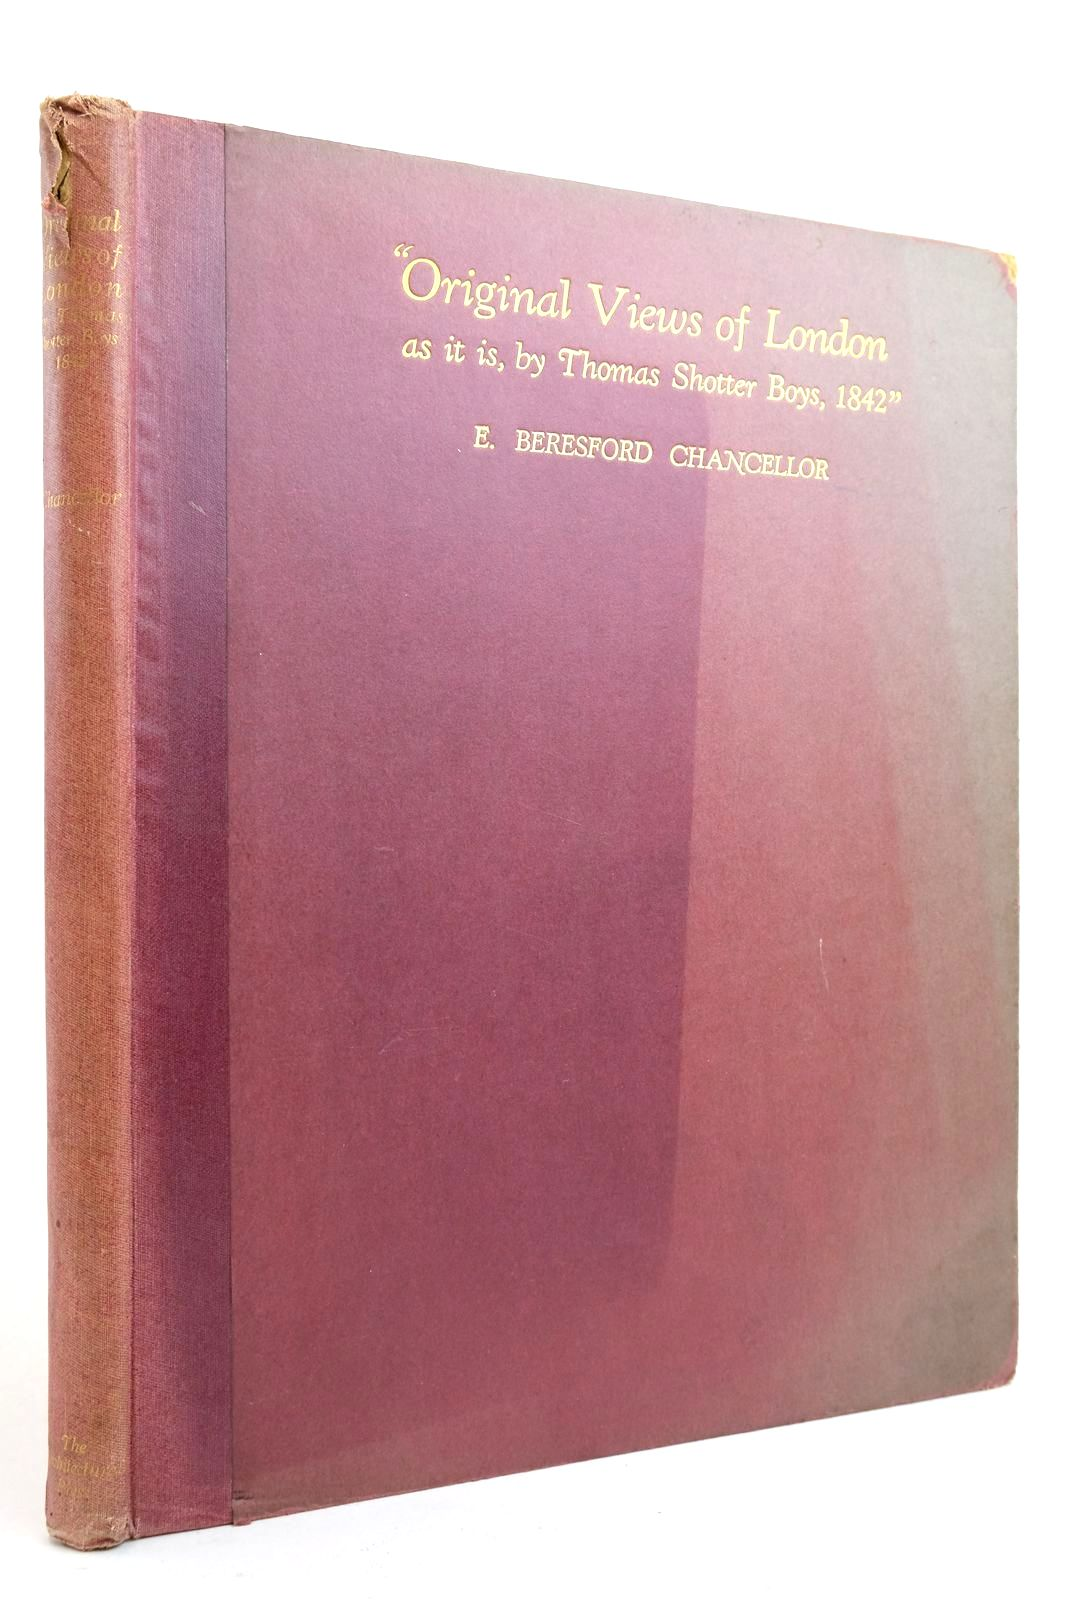 Photo of ORIGINAL VIEWS OF LONDON written by Chancellor, E. Beresford illustrated by Boys, Thomas Shotter published by The Architectural Press (STOCK CODE: 2134868)  for sale by Stella & Rose's Books